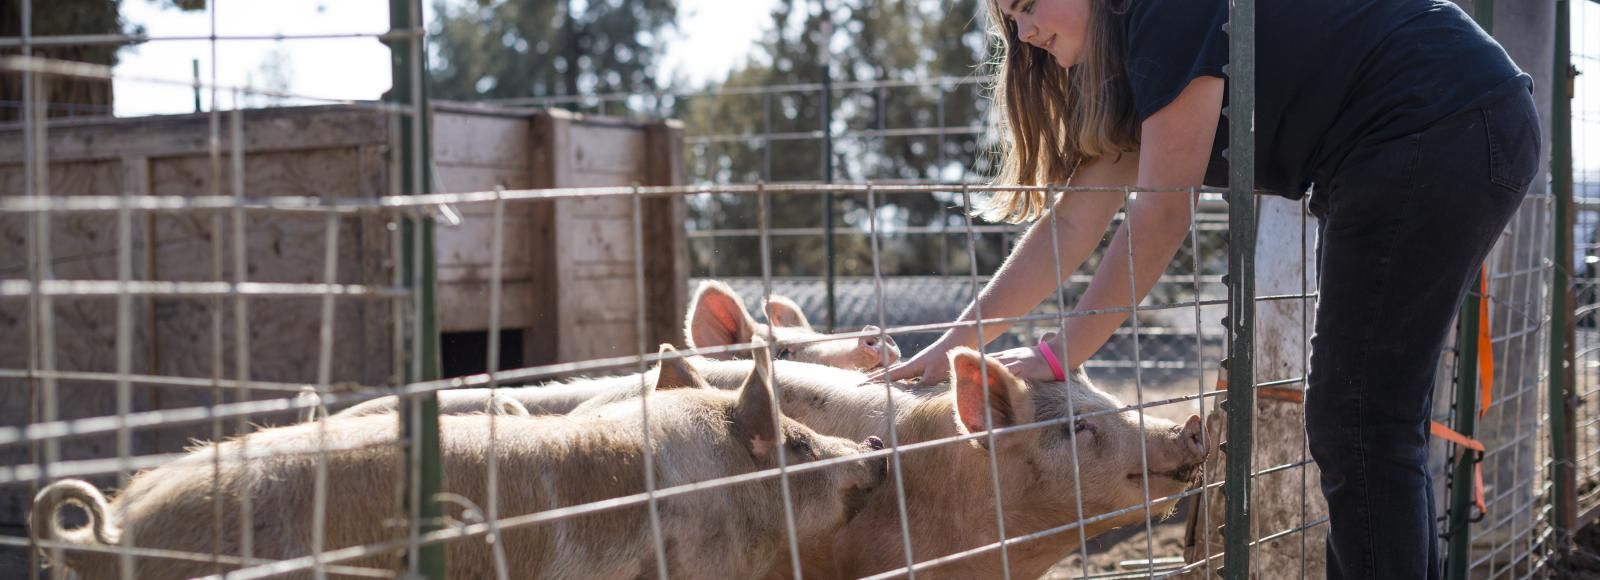 Payton North of Mountain View High School's FFA with three hogs in a pen. The FFA program raises hogs destined for the district's 29 school lunchrooms.